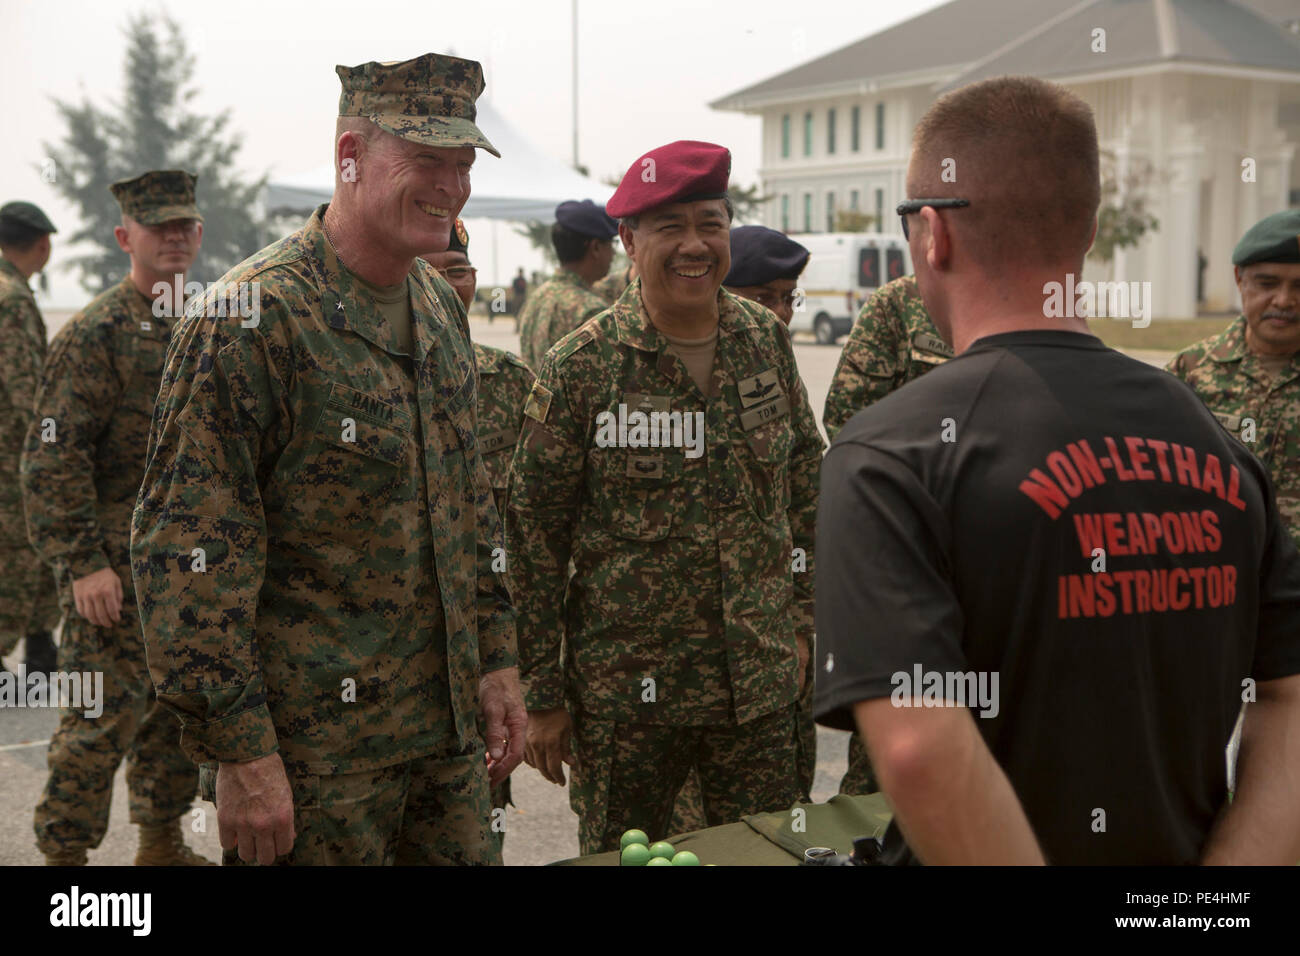 Maj. Gen. Dato' Mohd Suhaimi bin Hj Mohd Zuki, commanding general of the Malaysian Army Training and Doctrine Command, and Brig. Gen. Edward D. Banta, commanding general of Marine Corps Installations West, speak to Sgt. Christopher Nowlin, a non-lethal weapons instructor with 3rd Law Enforcement Battalion, III Marine Expeditionary Force, during Non-lethal Weapons Executive Seminar, Sept. 16, 2015. NOLES is an annual exercise hosted by U.S. Marine Corps Forces, Pacific and is the U.S. Pacific Command's premier multilateral theater security cooperation event for non-lethal weapons, this is the 1 Stock Photo